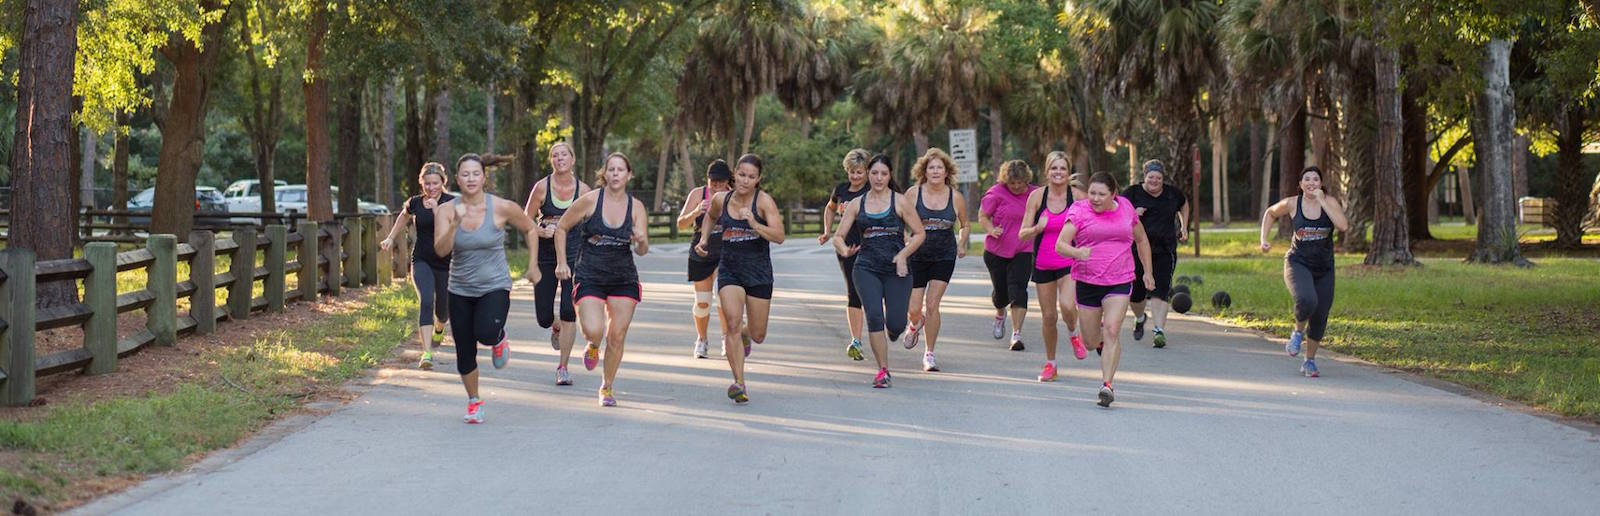 Bootcamp in Palm Harboor, Tarpon Springs